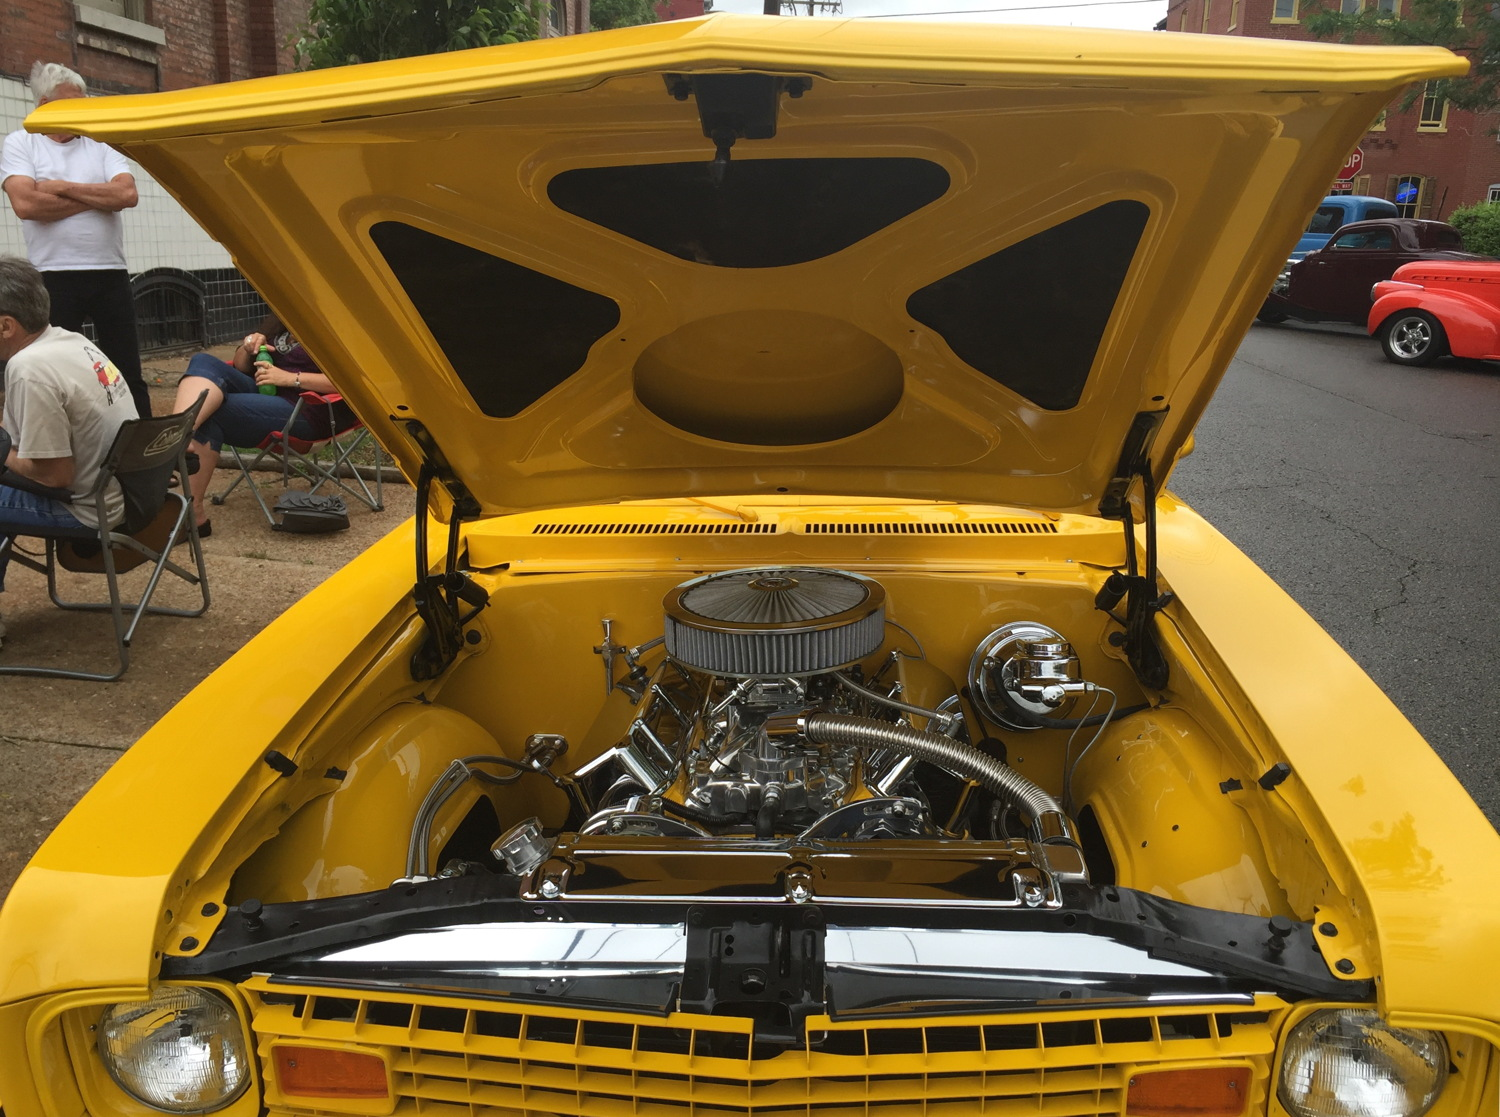 1973 Chevrolet Nova 454 V8 bored out to 470 cubic inches.